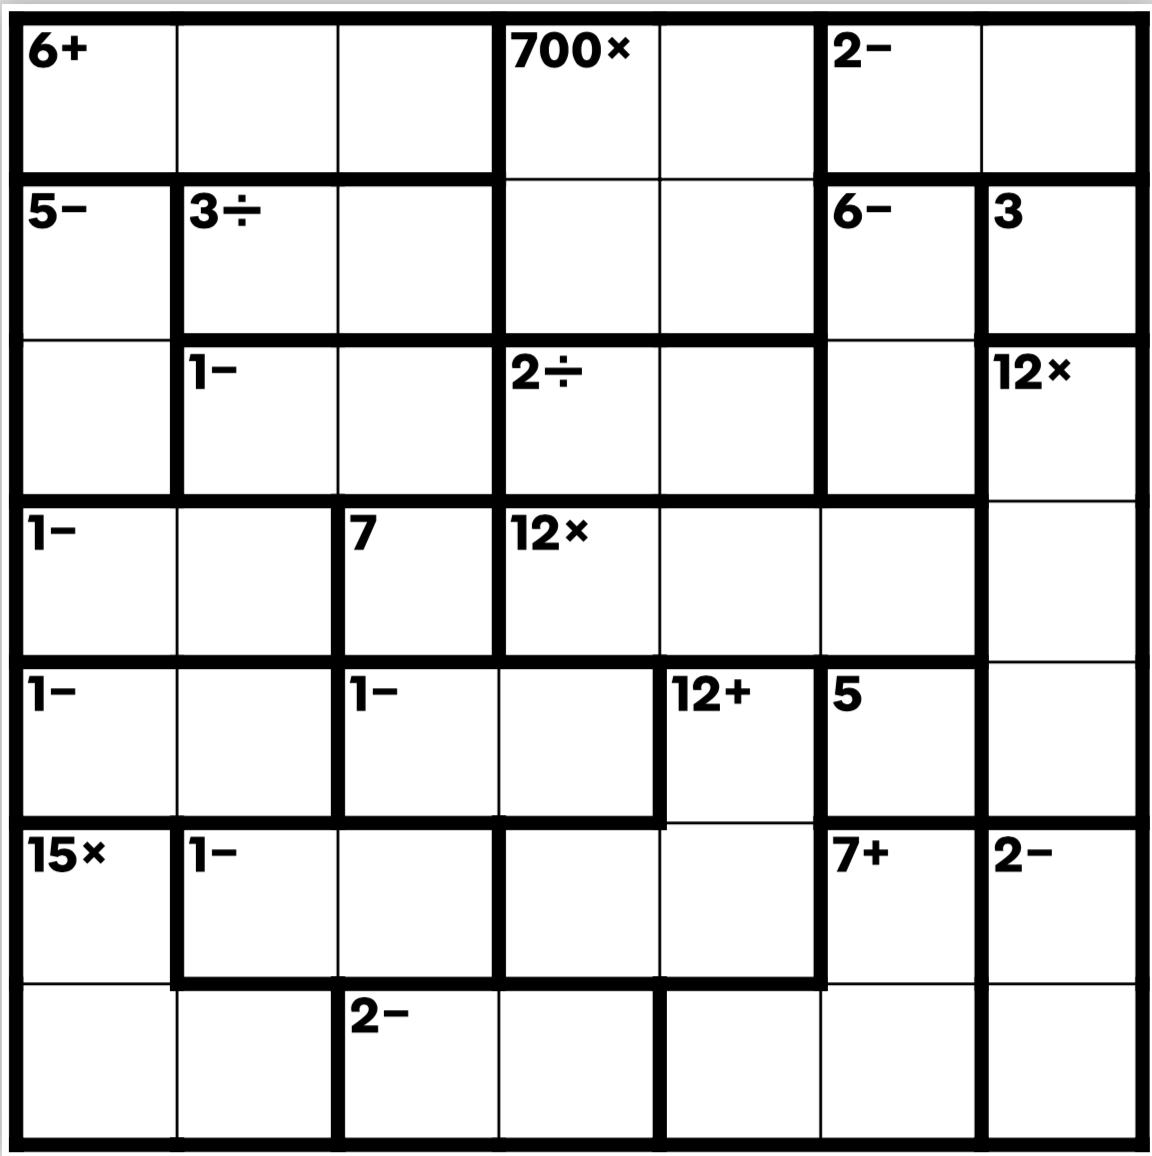 picture regarding Printable Kenken Puzzles 9x9 identify Dragons and soccer